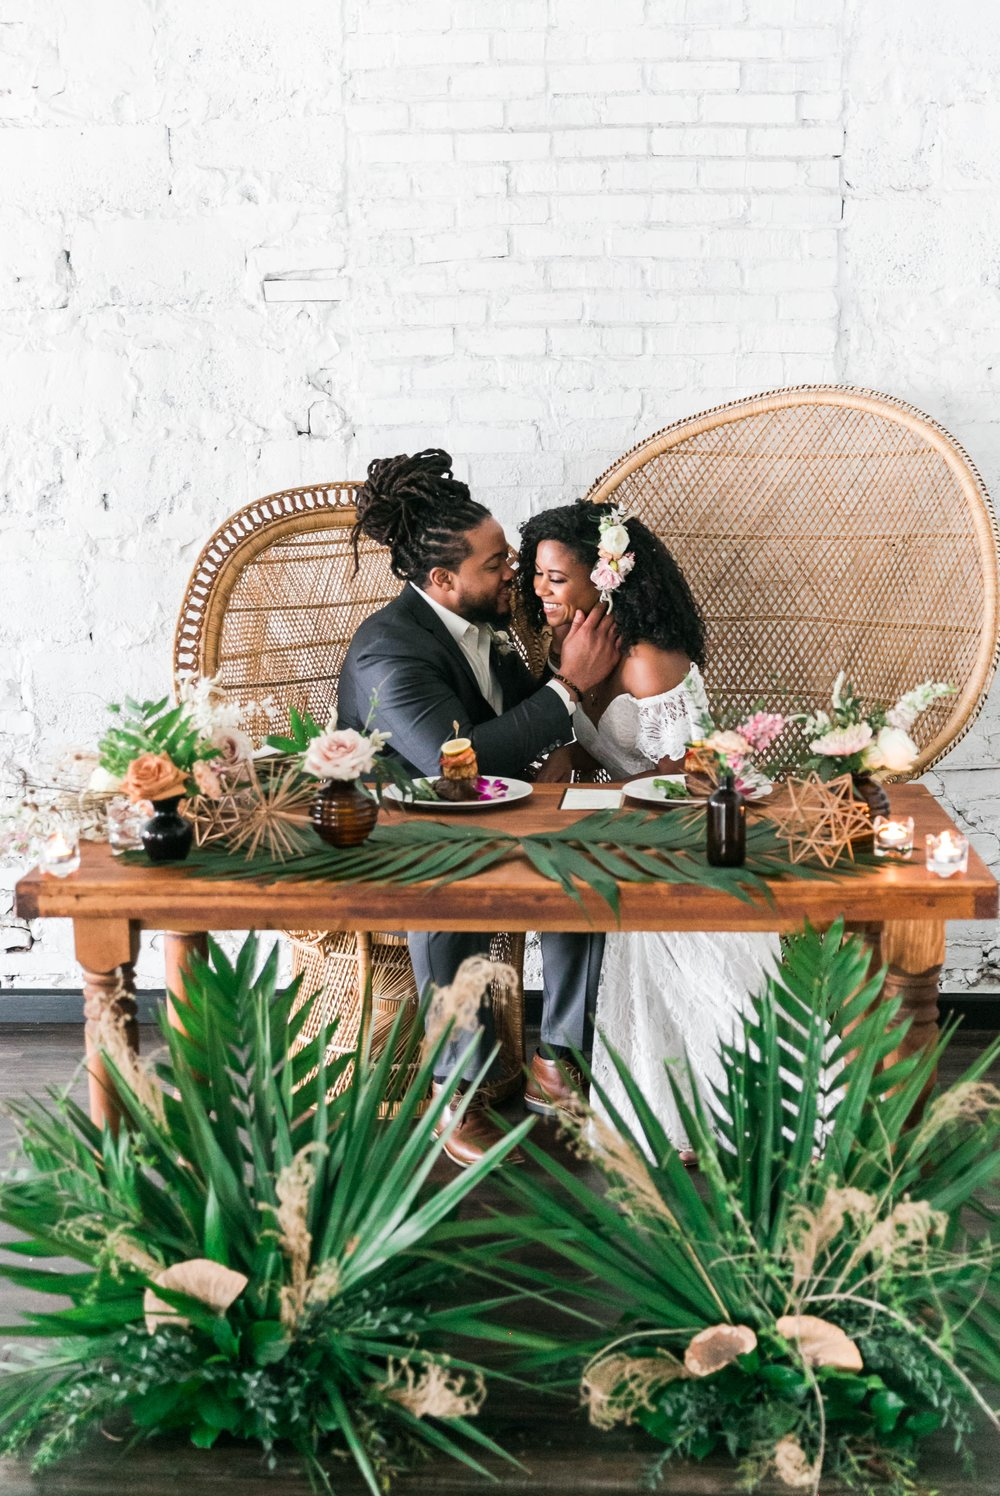 Bride and groom at the sweetheart table at their wedding reception sitting in Midcentury Woven Wicker Peacock Chairs - Black Love - Tropical Destination Wedding Inspiration - Oahu Hawaii Wedding Photography